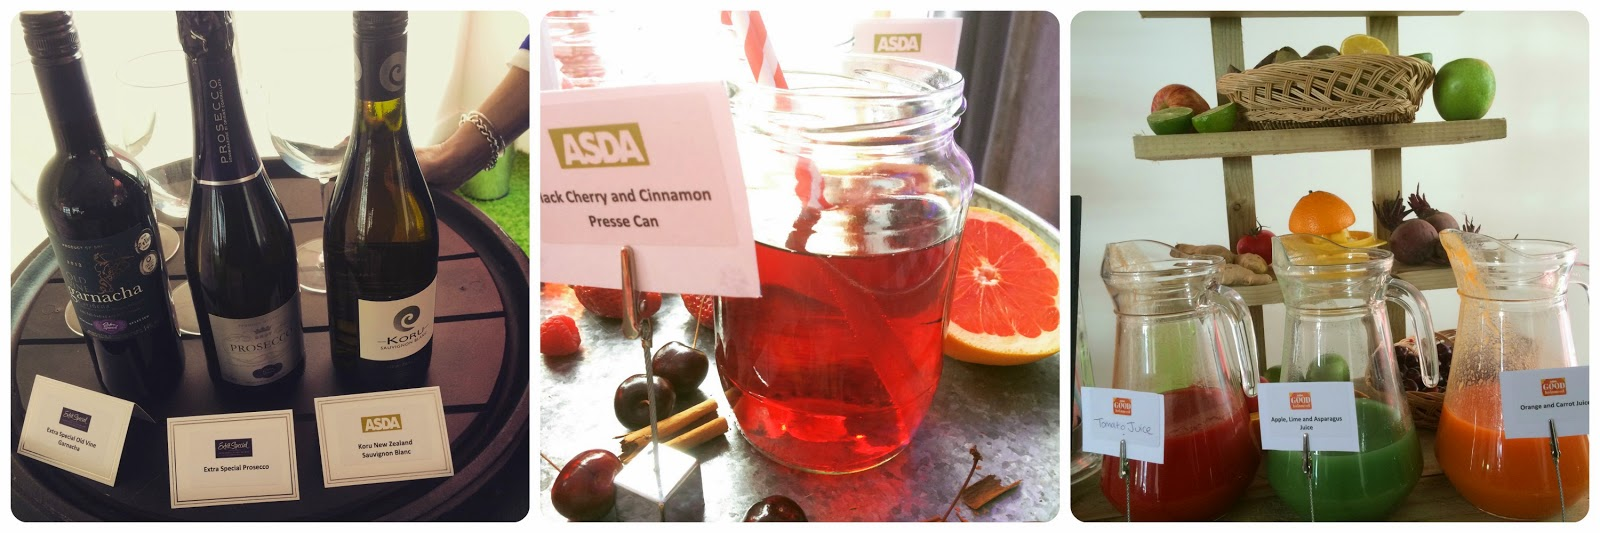 wine, press and smoothies from #AsdaSpringSummer 2015